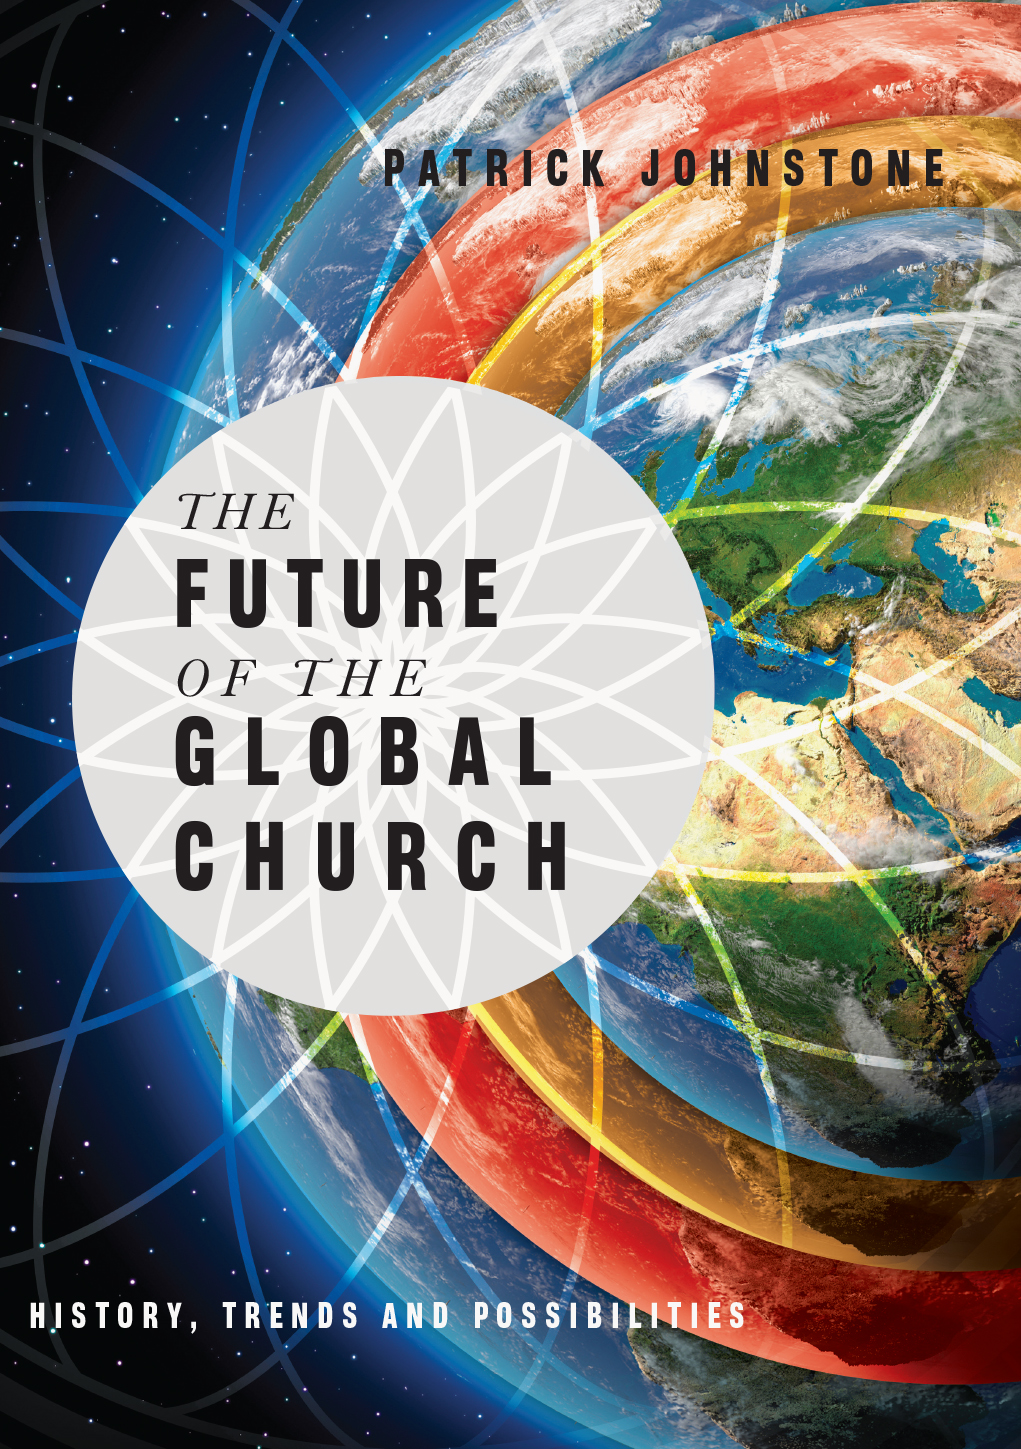 The Future of the Global Church